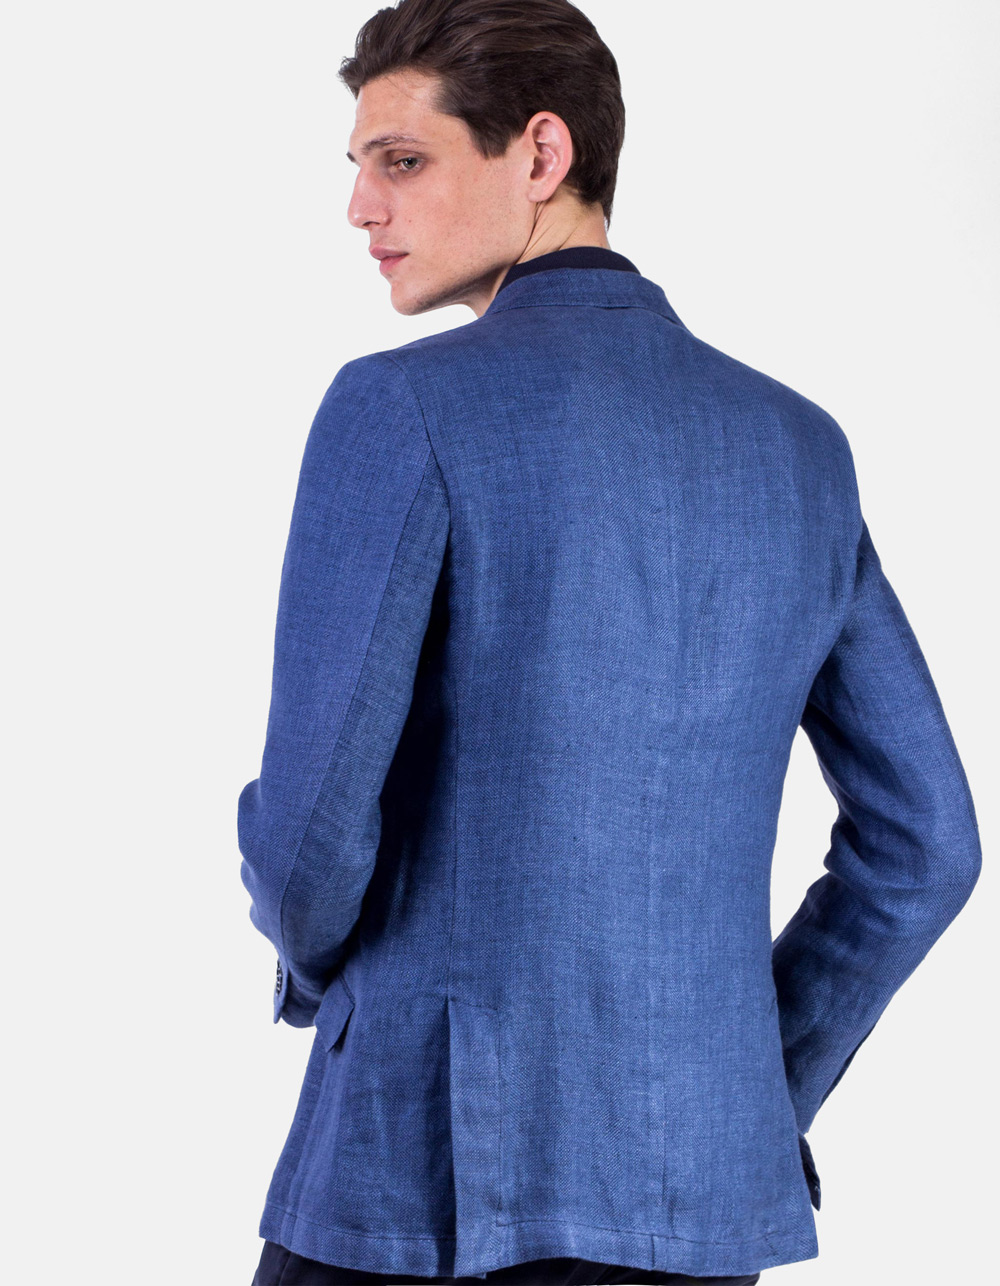 Blue Plain blazer - Backside